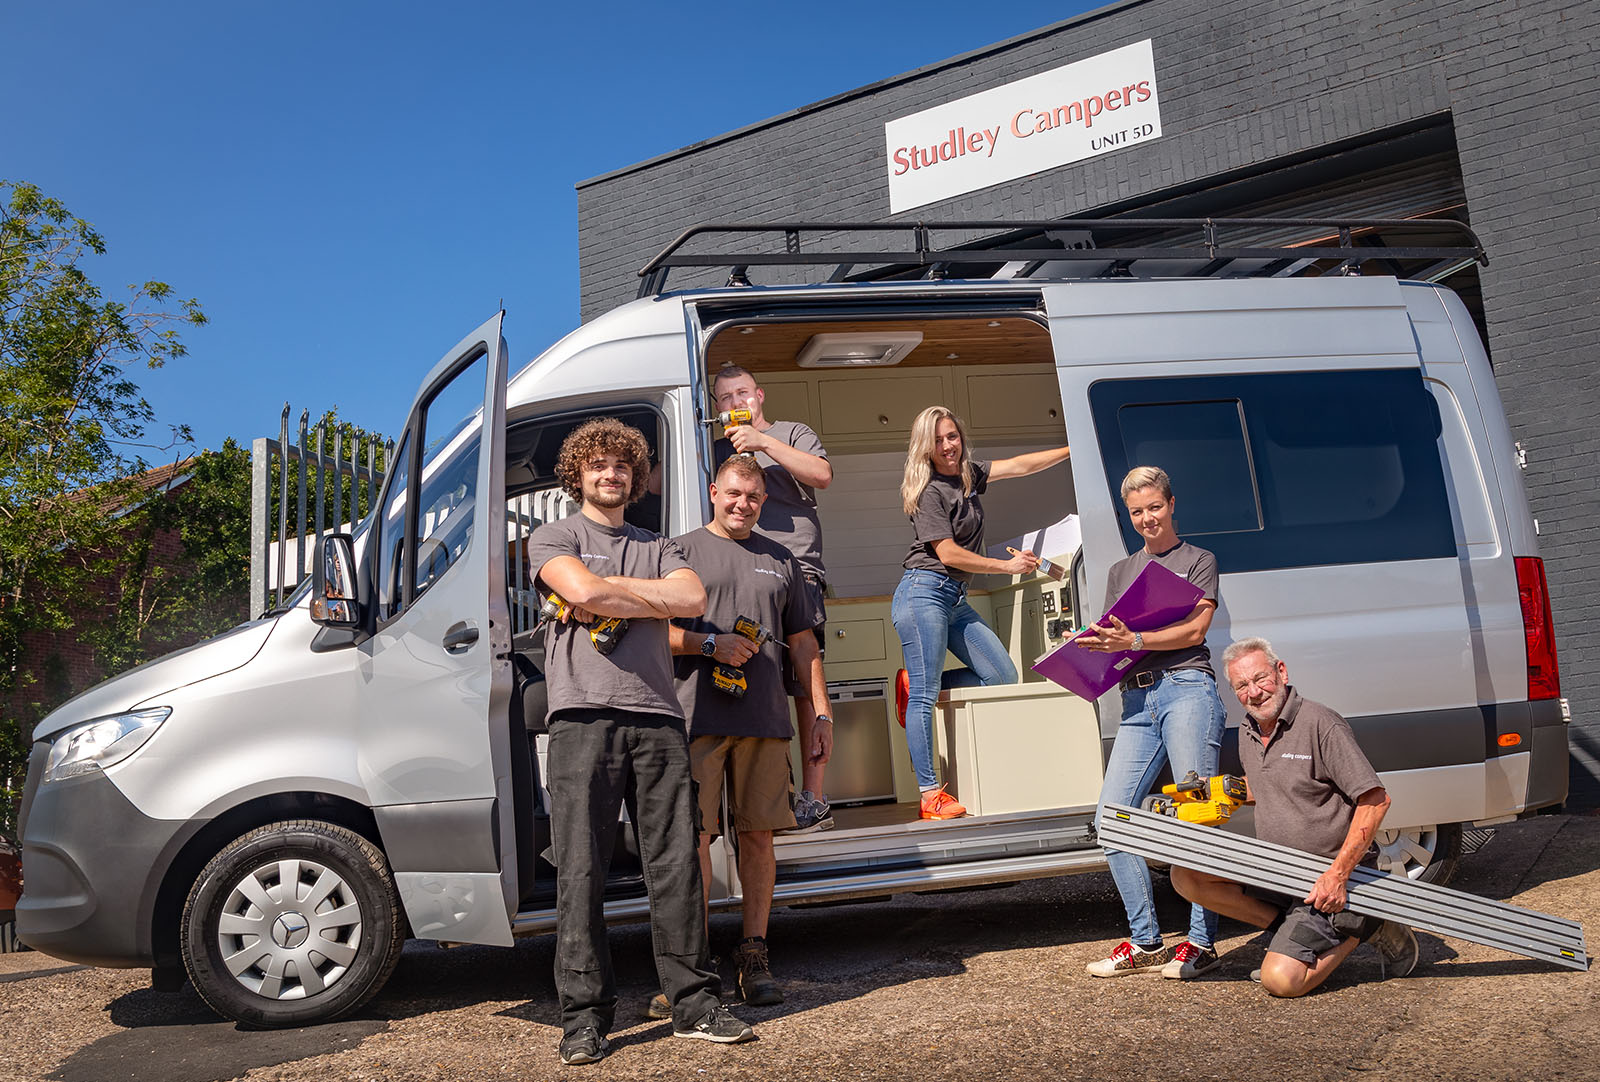 The Studley Campers team of skilled designers, craftsmen, project managers and decorators